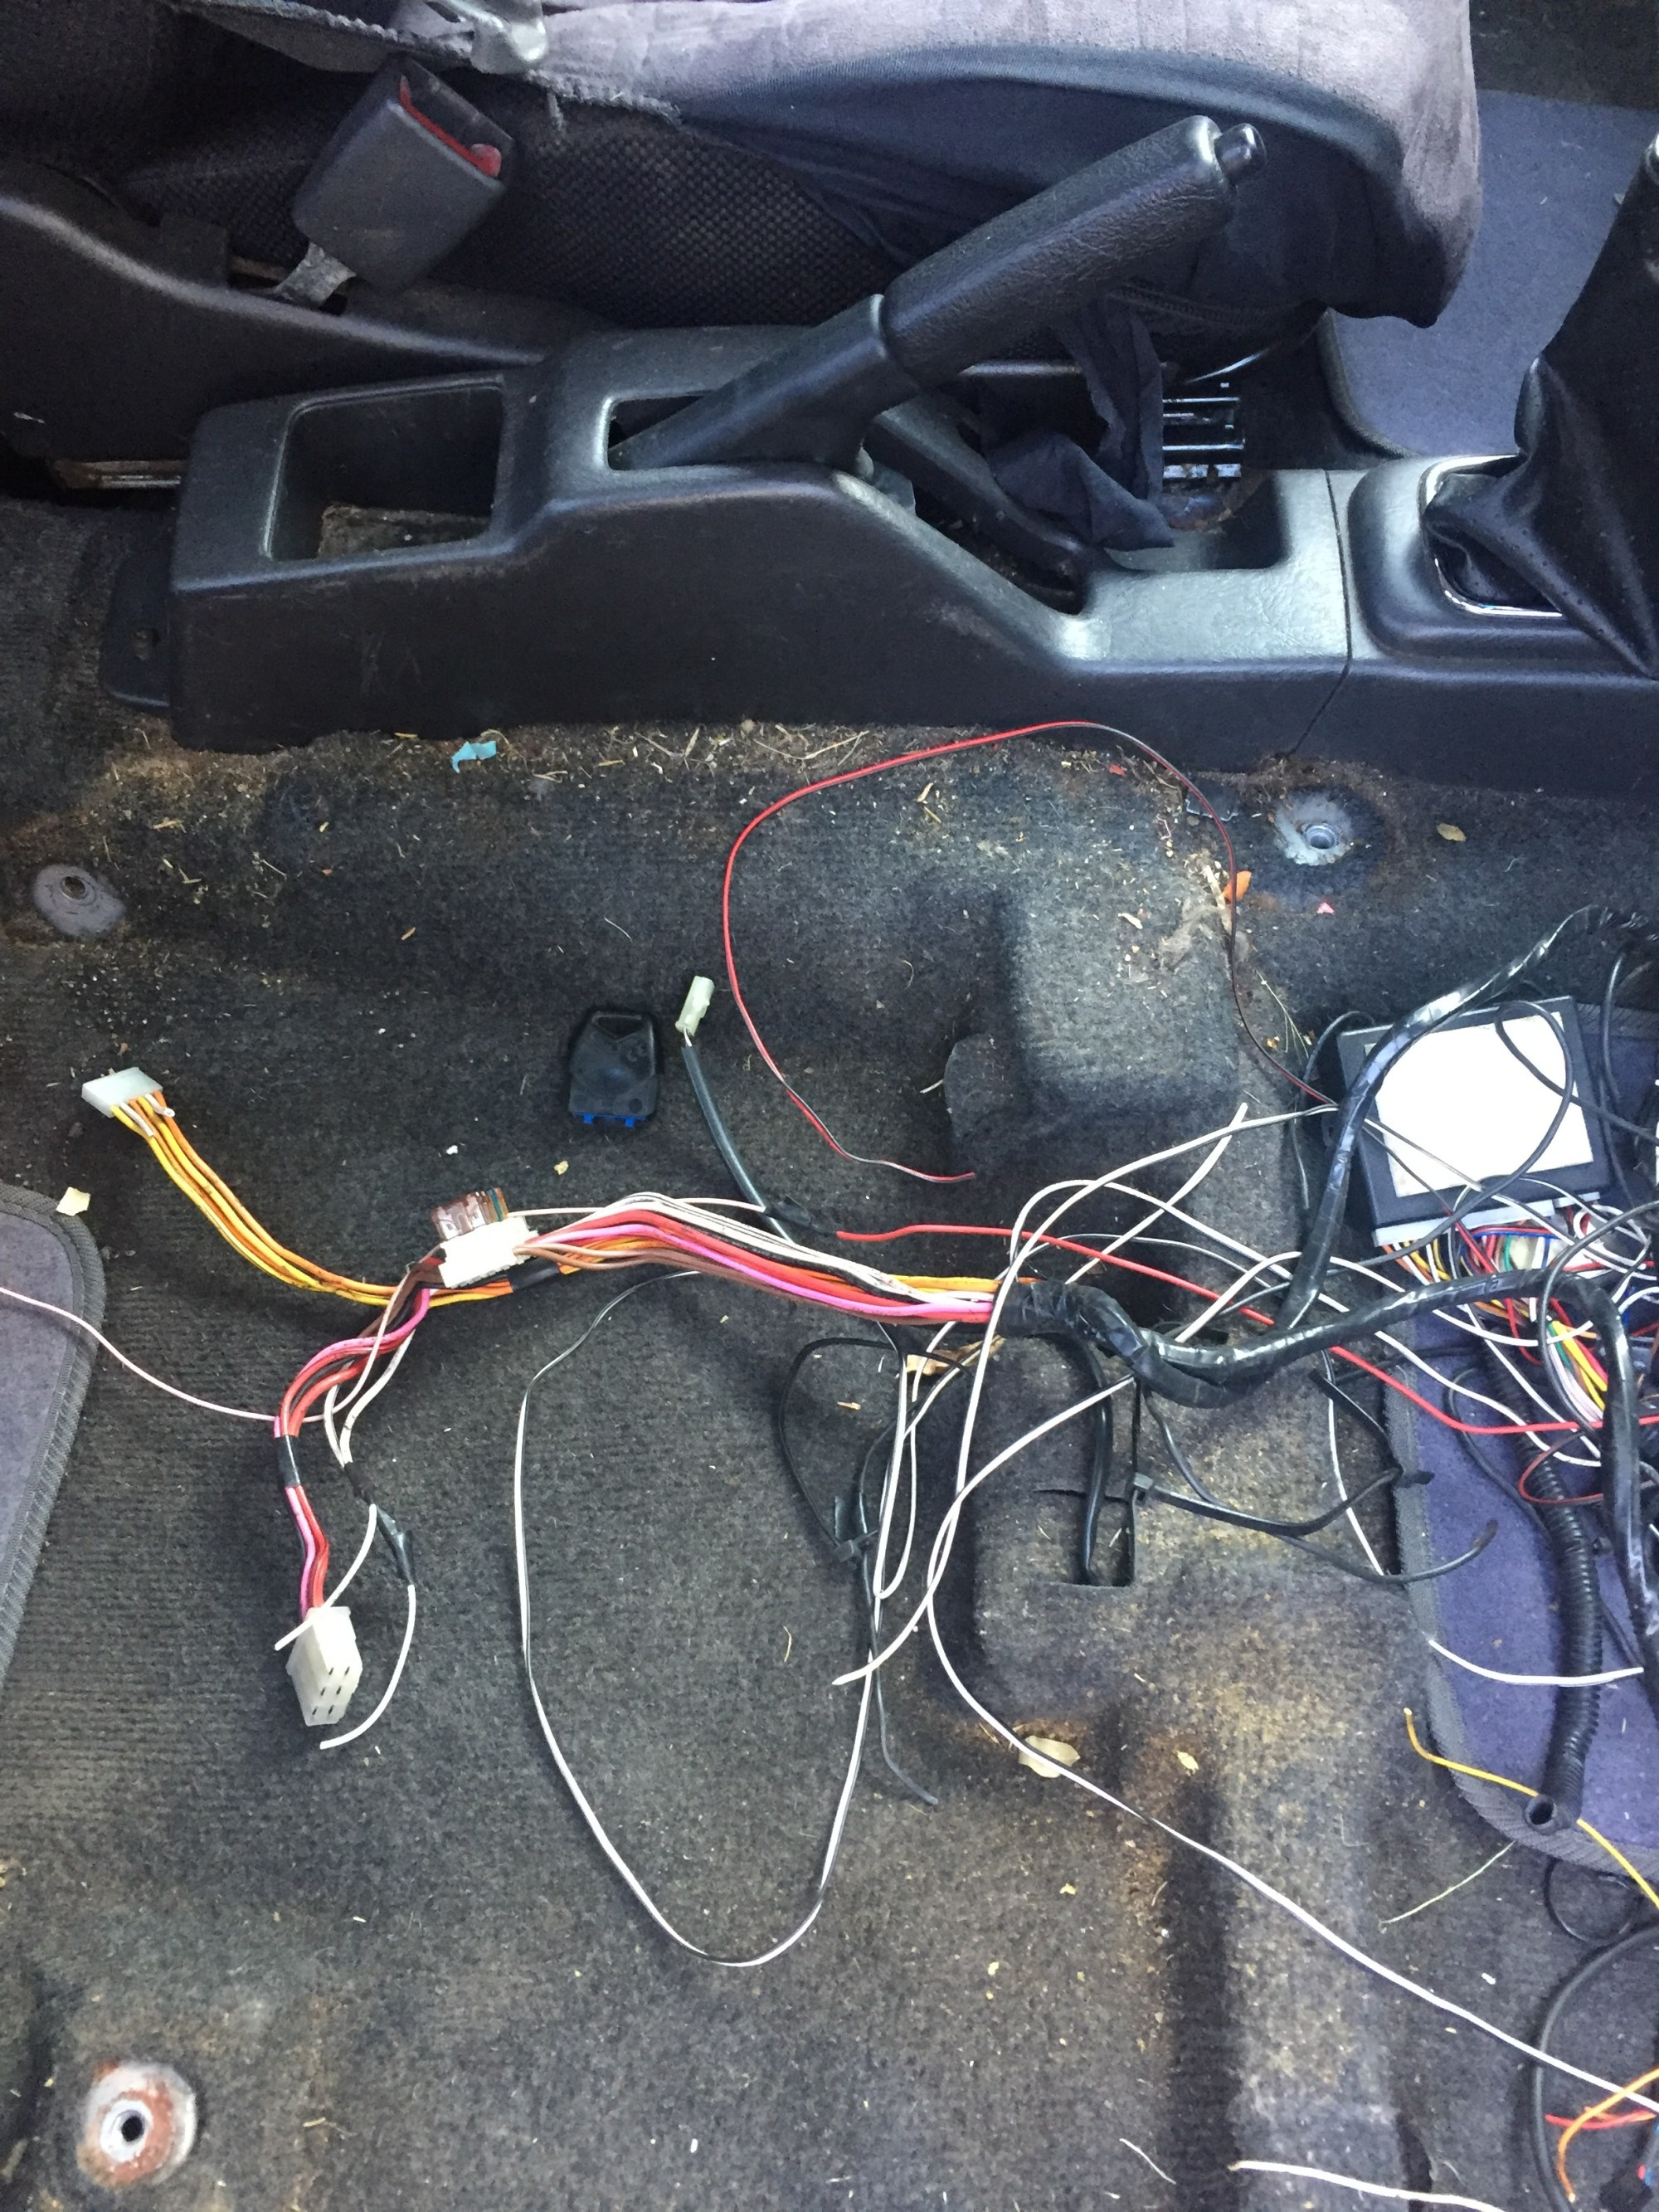 hight resolution of so i put the chip next to the ignition and turned key had spark and engine ran normal i redone the xu4 to xu7 bridge and had no spark without chip